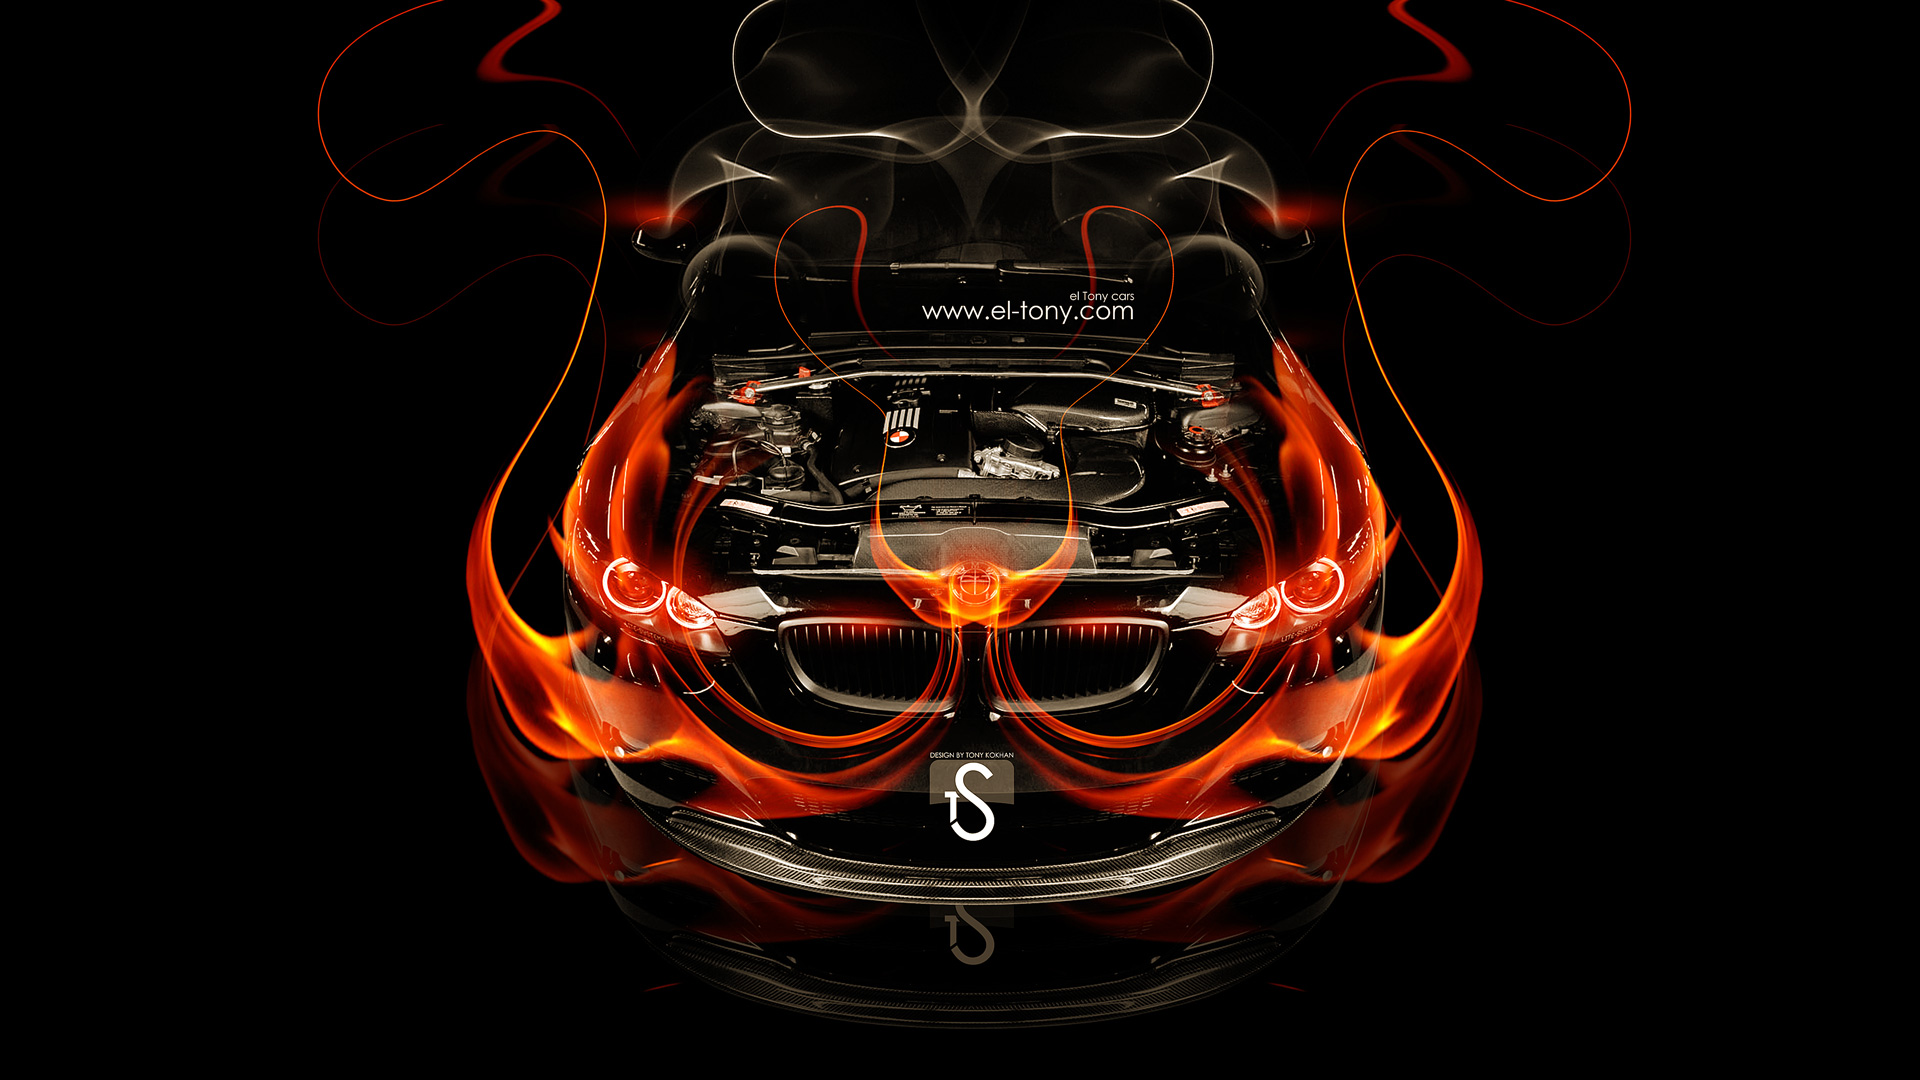 Elegant BMW M3 Engine Fire Car 2014 HD Wallpapers